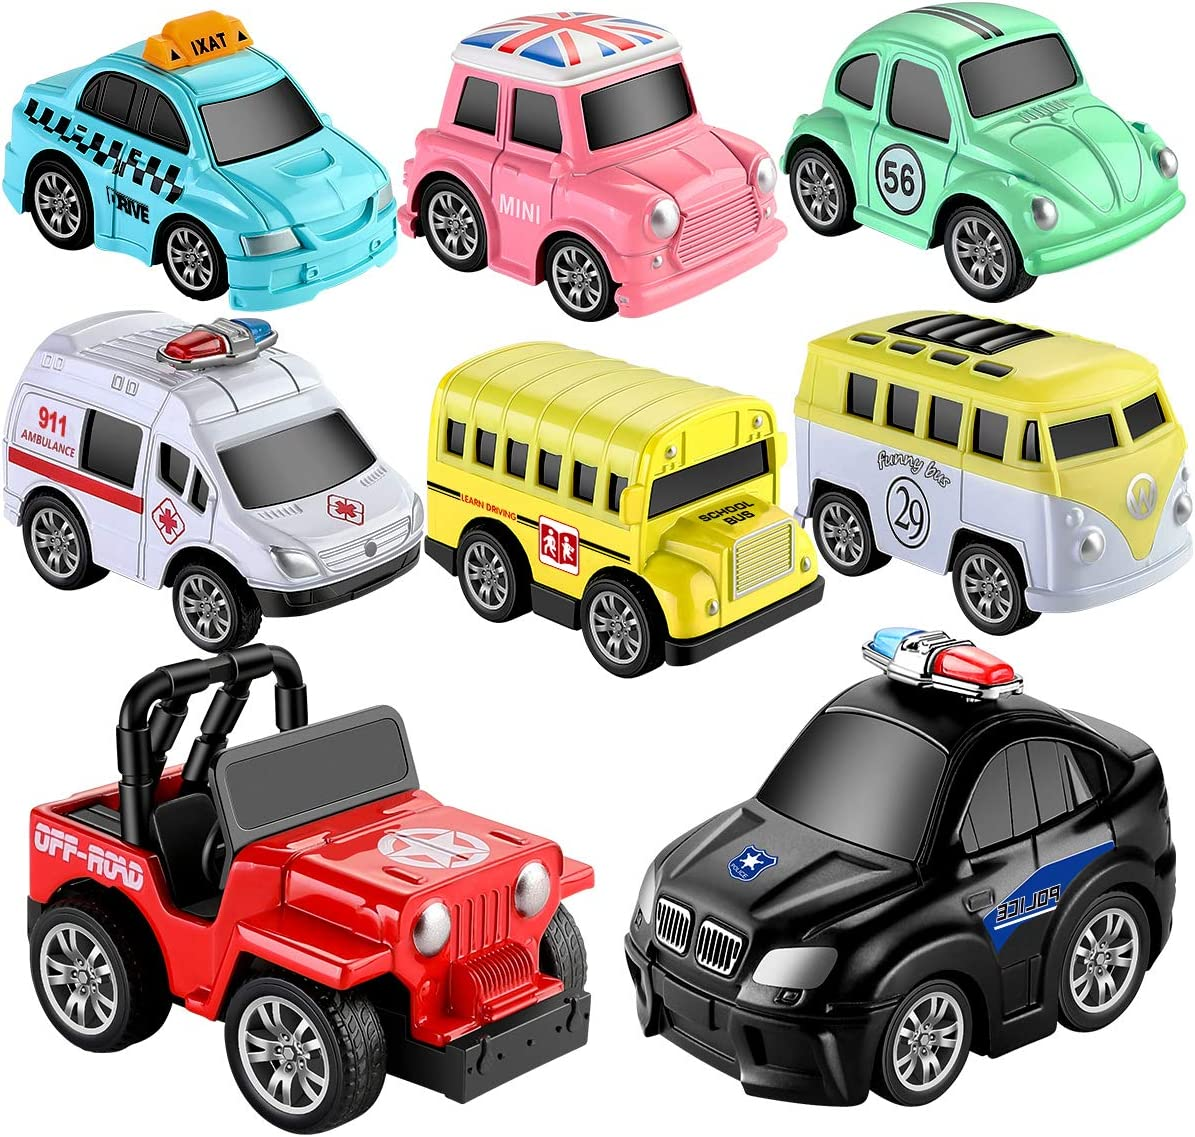 Geyiie Toys Pull Back Vehicles, Car Toy Play Set, 8 Packs, Friction Powered Die-cast Cars Trucks Playset for Boys Girls Toddler Kids Indoor Outdoor Gifts Party Favors